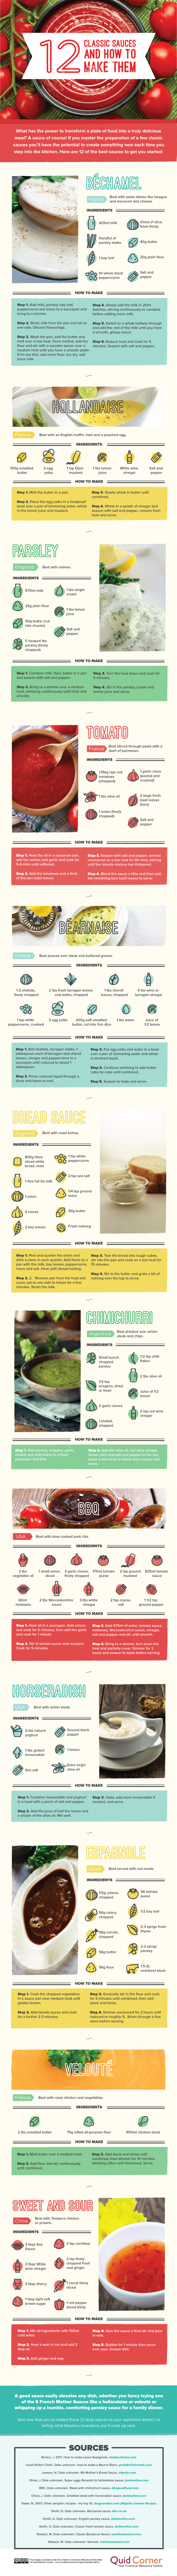 12-classic-sauces-and-how-to-make-them-DV3.png